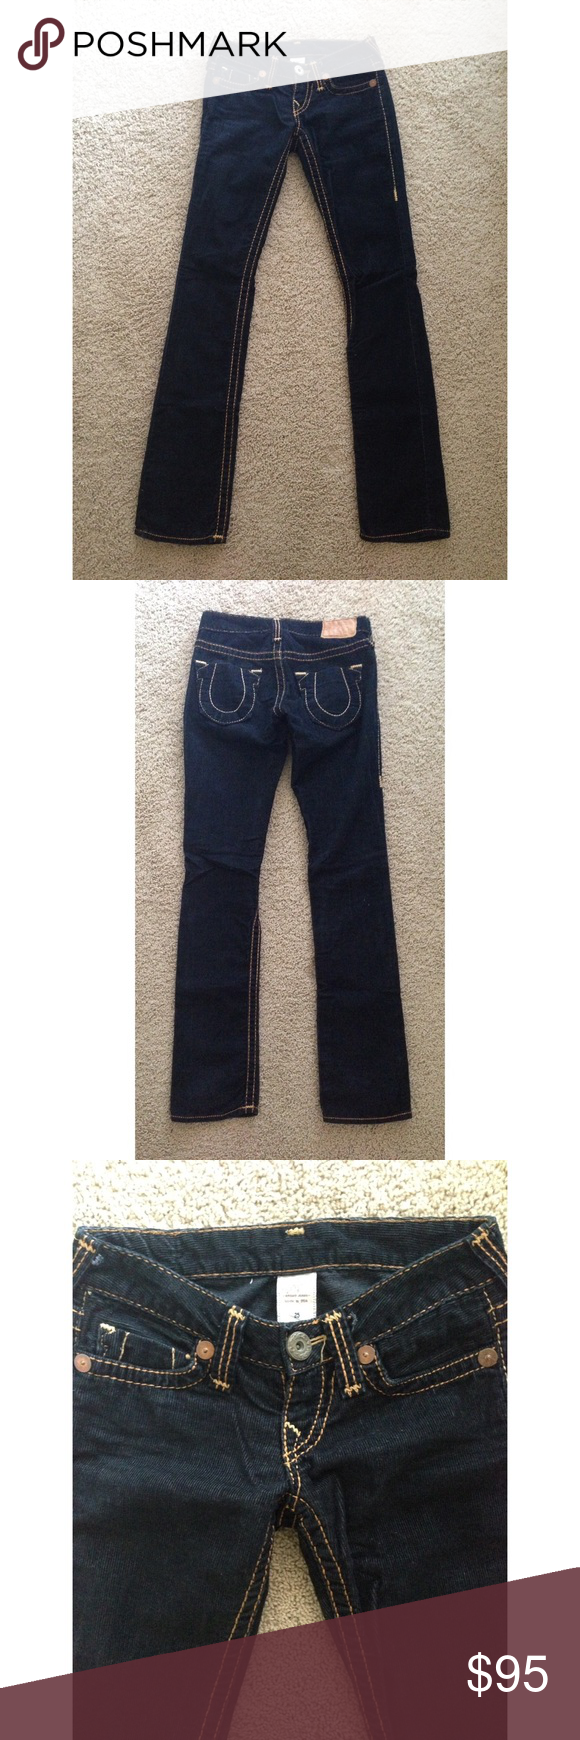 Black corduroy true religion pant in size 25 Part of the buy one get an item half off deal.  Half off deal will be applied to lower price item.  Black true religion Corduroy pant in size 25.  Brand new never been worn. True Religion Pants Straight Leg